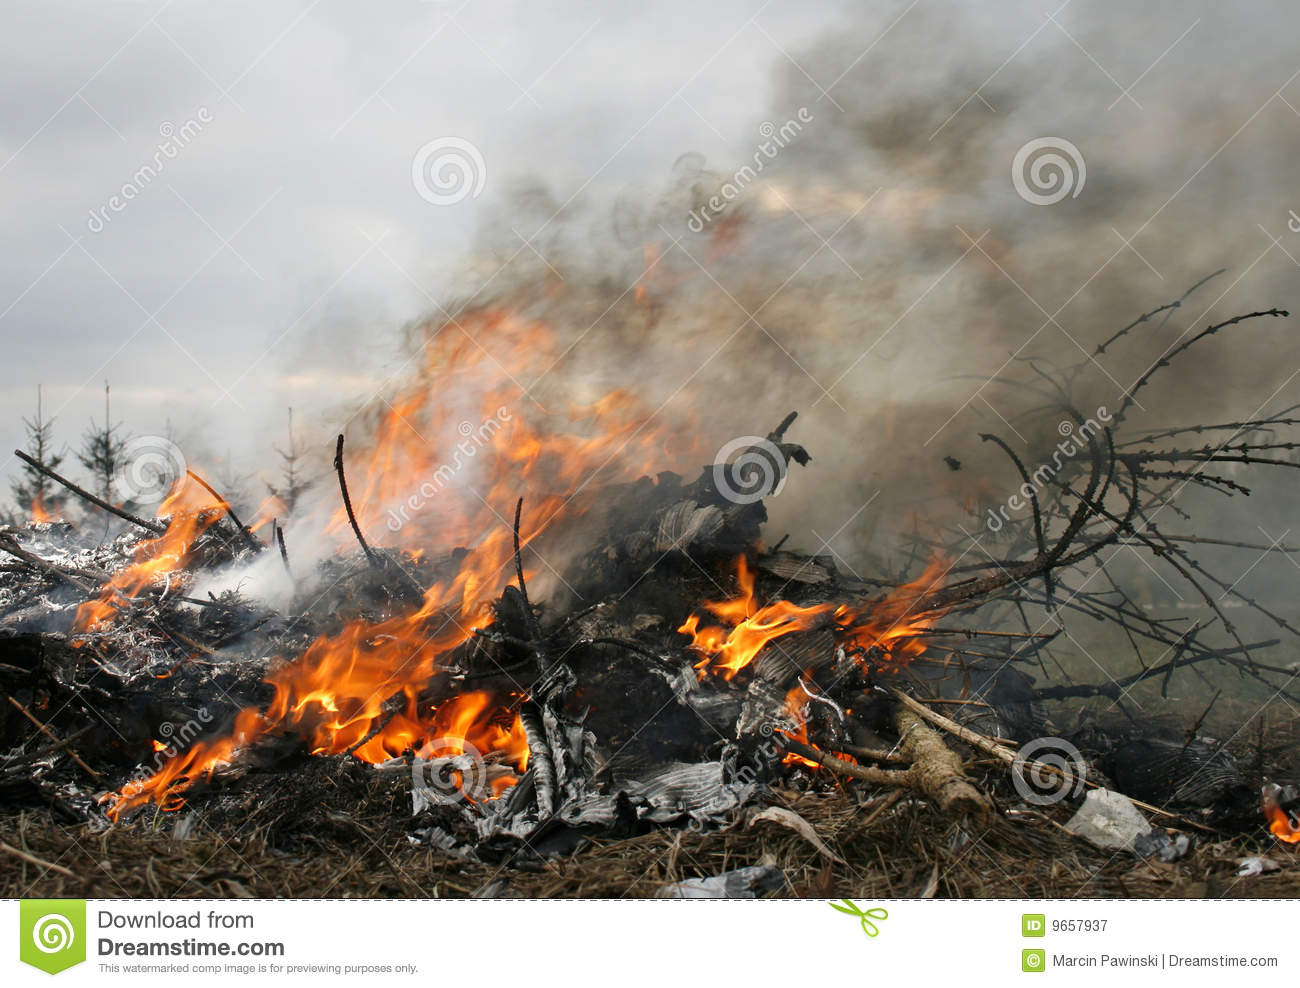 Essay The Causes Of Air Pollution